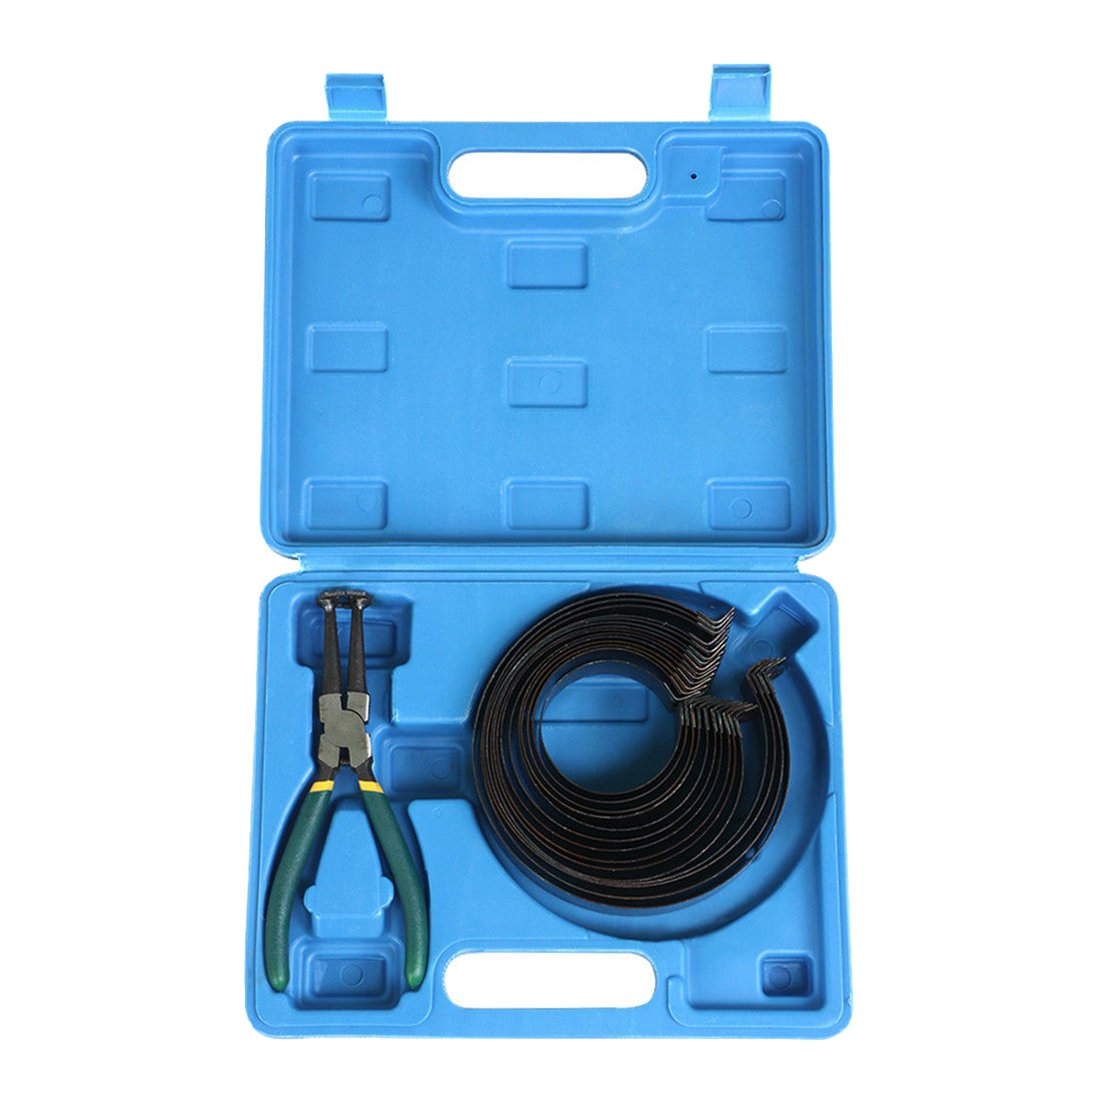 Piston Ring Compressor with plier - SODIAL(R) Piston Ring Compressor with plier 62mm - 145mm Auto Engines 14PCS 087684